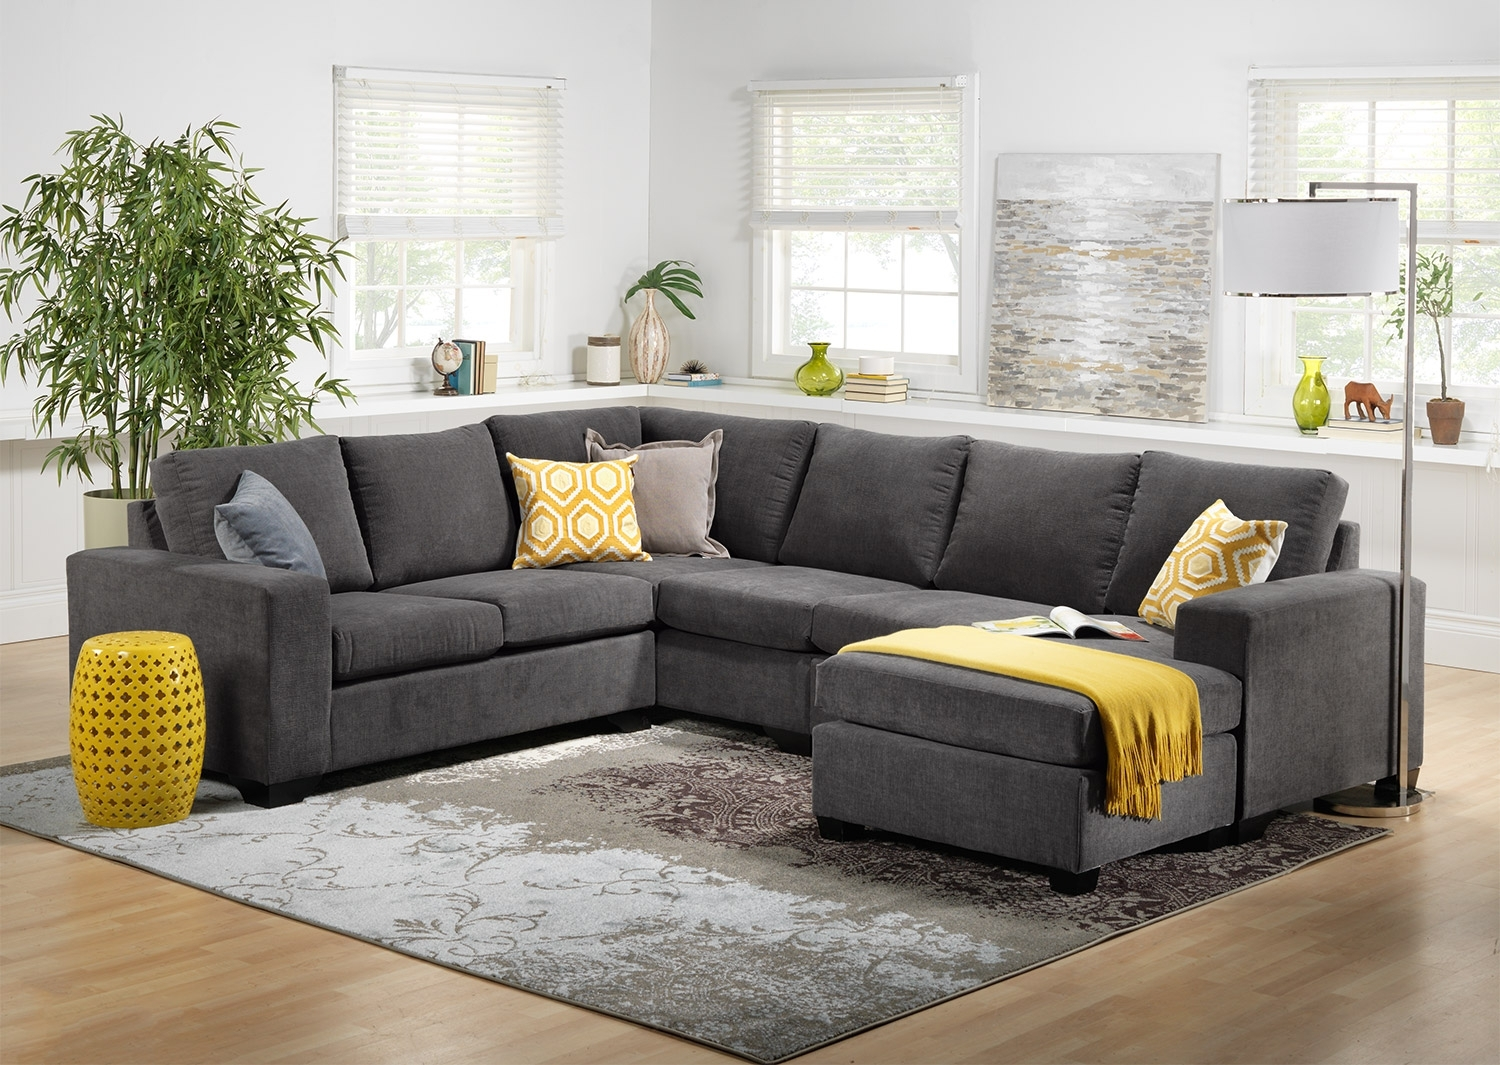 Impressive 3 Piece Sectional 17 20039989 Config Gallery 01 Large throughout Delano Smoke 3 Piece Sectionals (Image 16 of 30)